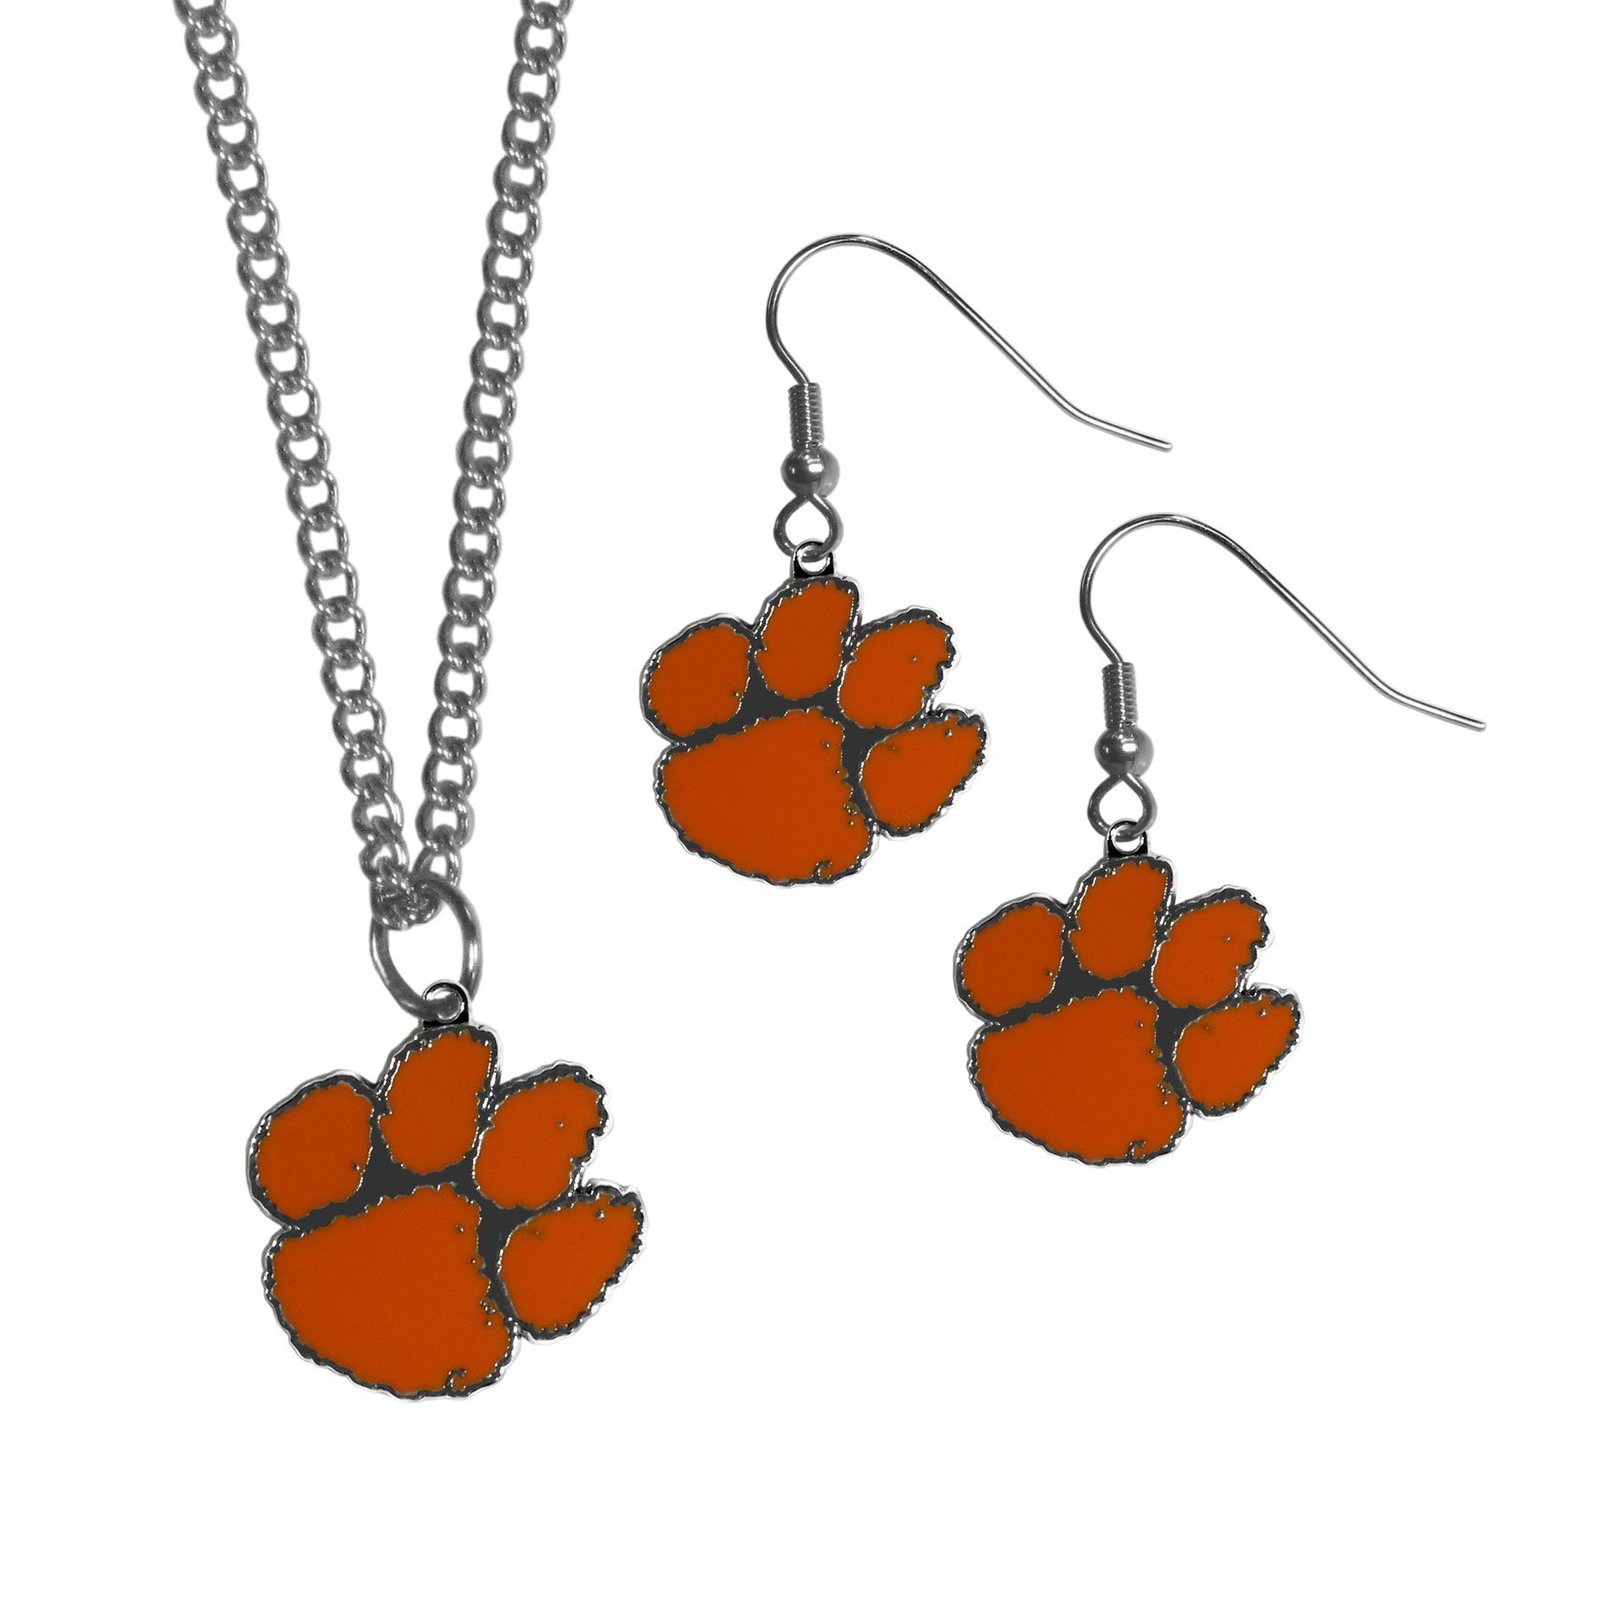 Caa clemson tigers dangle earrings and chain necklace set default title jademoghul 3656950808680